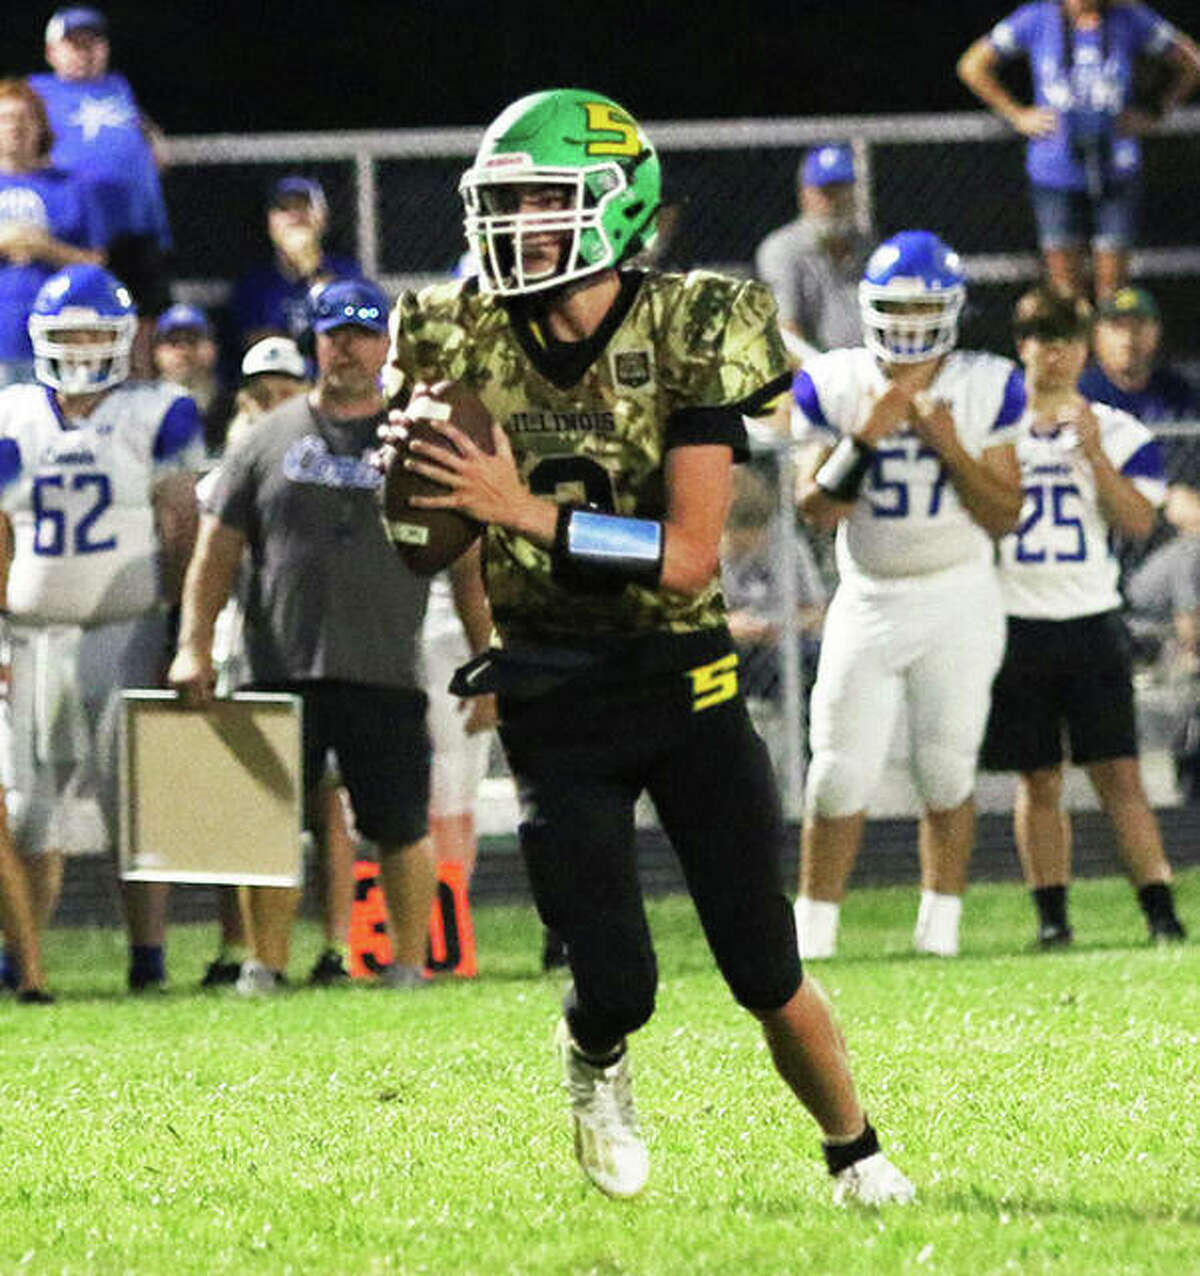 Southwestern QB Quinten Strohbeck looks for a receiver last Friday in the Piasa Birds' win over Greenville at Hauser Field in Piasa.